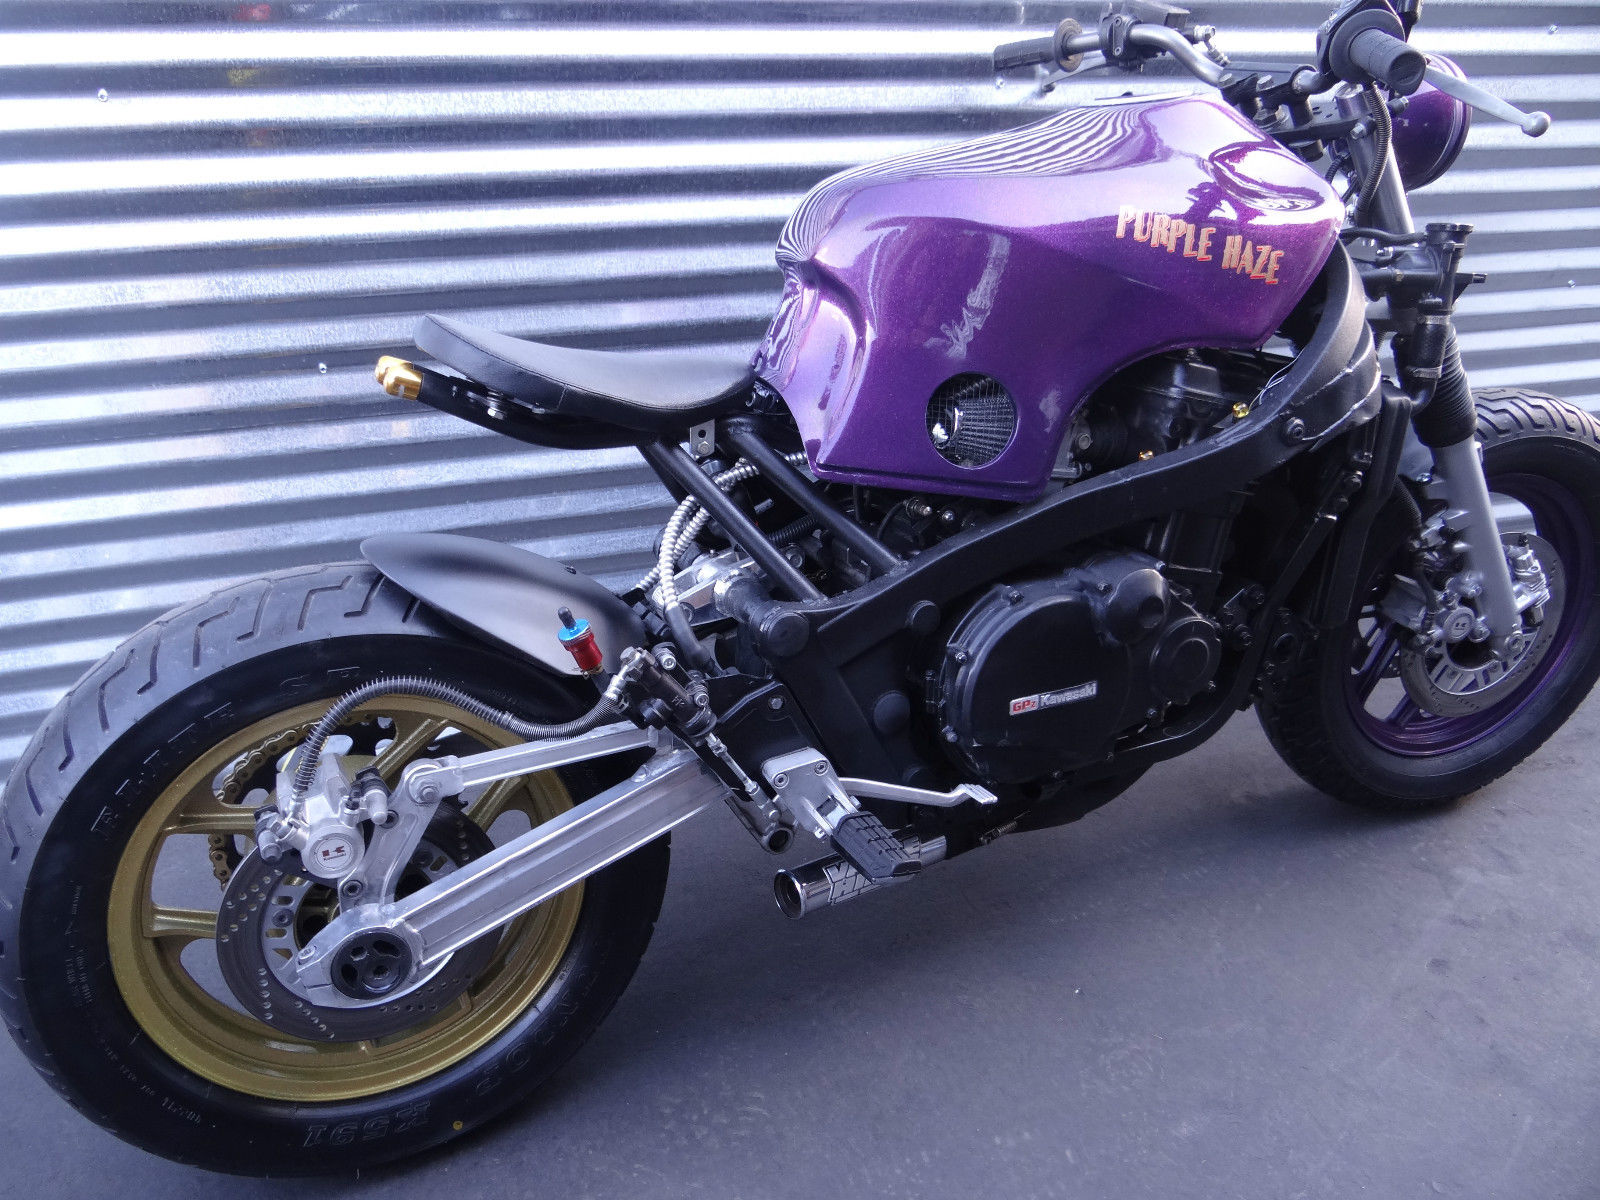 Bobber Cafe Racer Kawasaki Ninja 1000rx Purple Haze See Video Klr 650 Wiring Diagram 1986 Custom Built Motorcycles